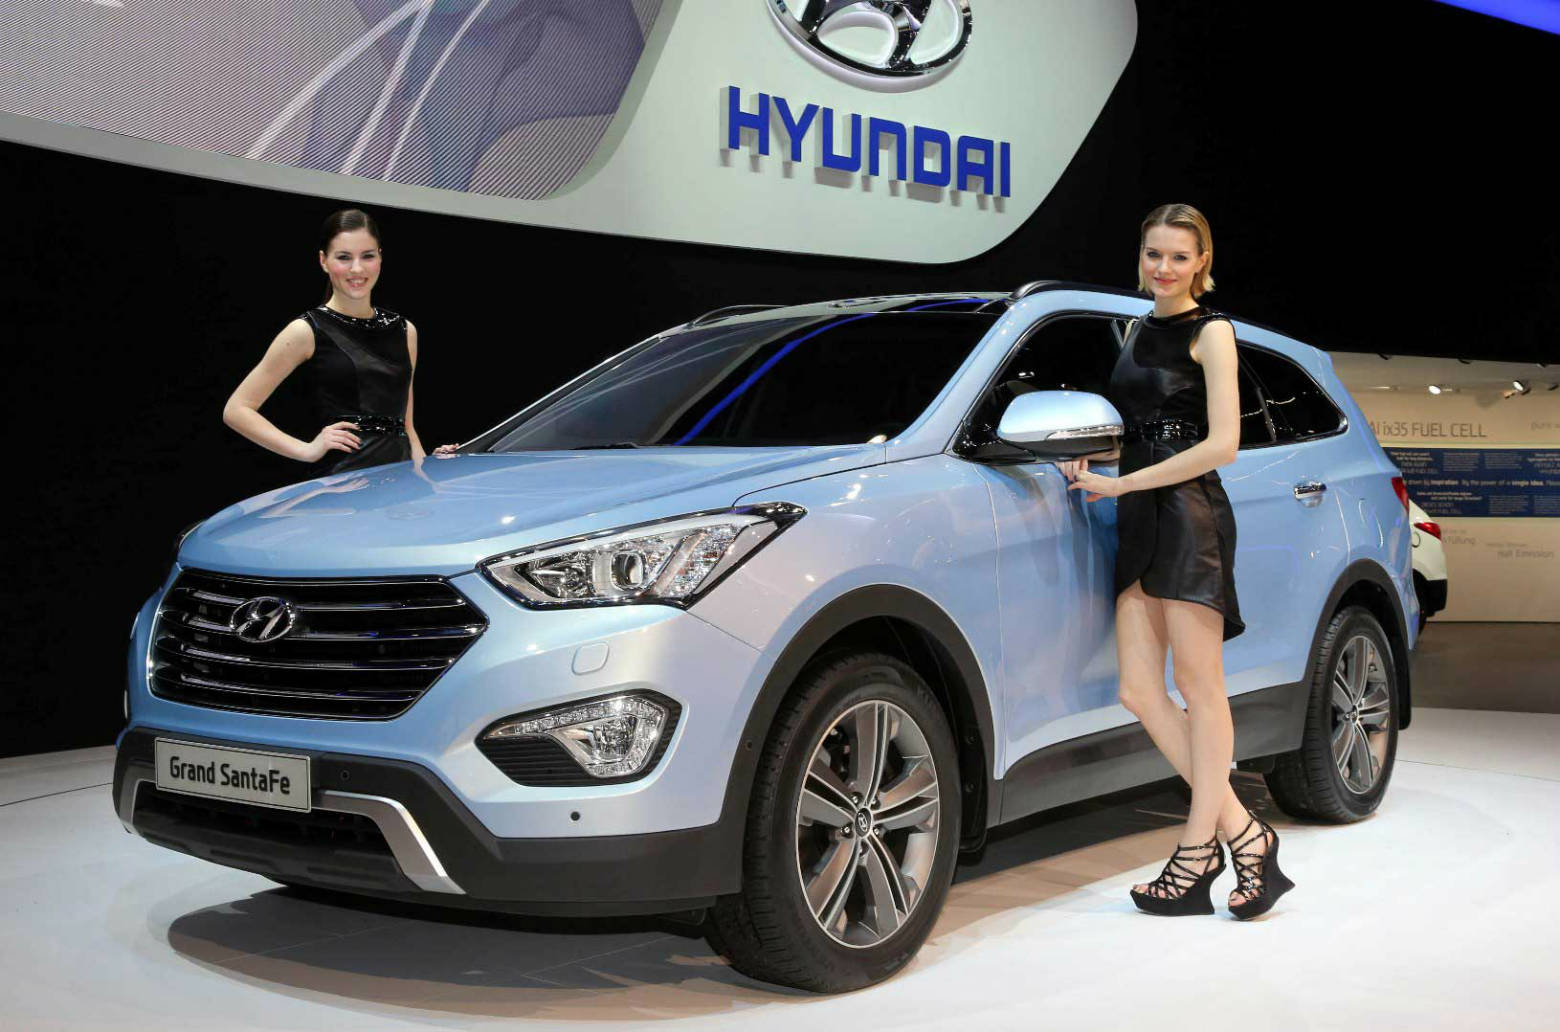 hyundai launched grand santa fe to european customers in geneva muscle cars zone. Black Bedroom Furniture Sets. Home Design Ideas